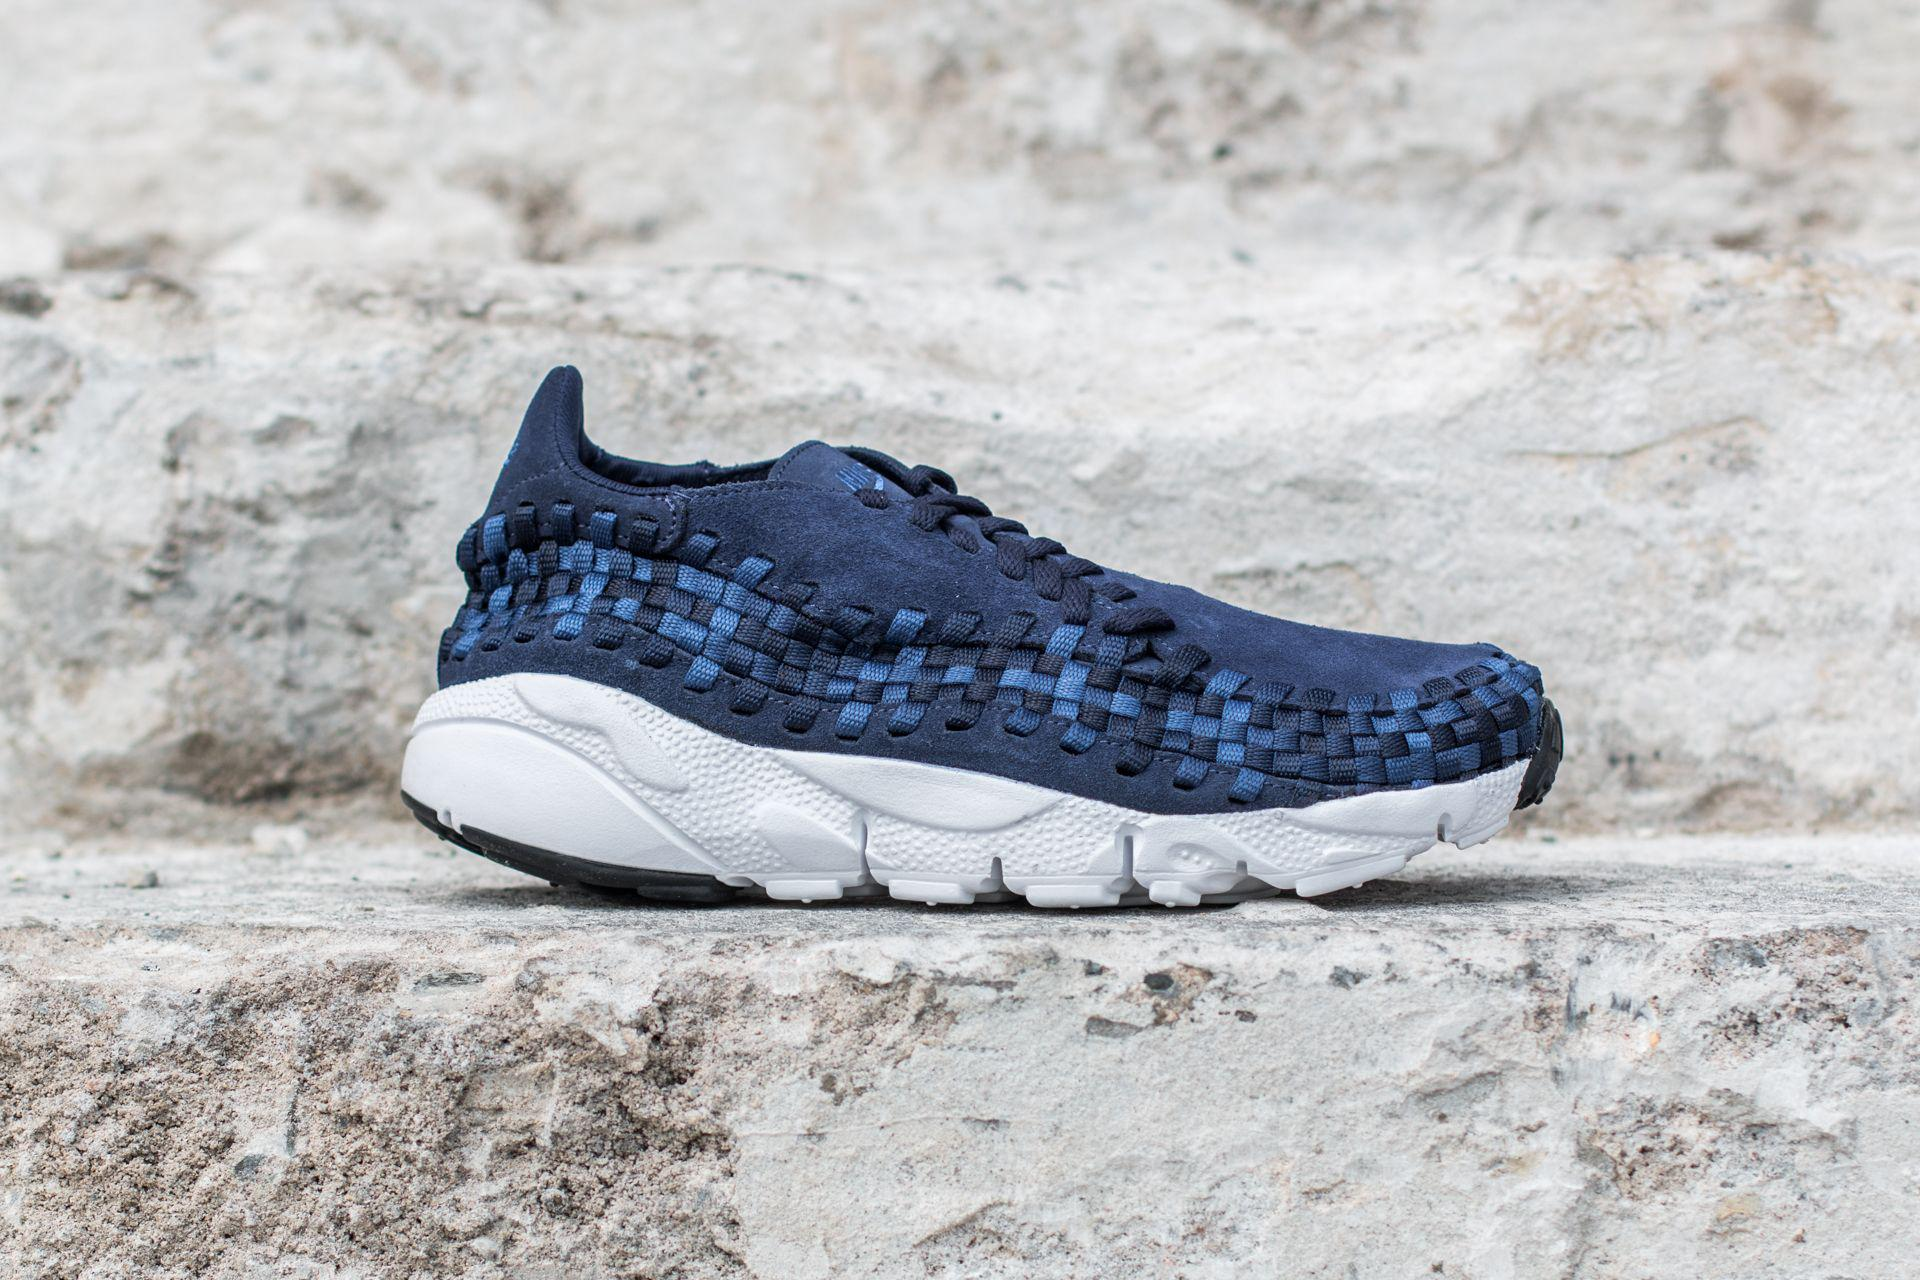 80386afdb588a5 Lyst - Nike Air Footscape Woven Nm Binary Blue  Team Royal-black in ...